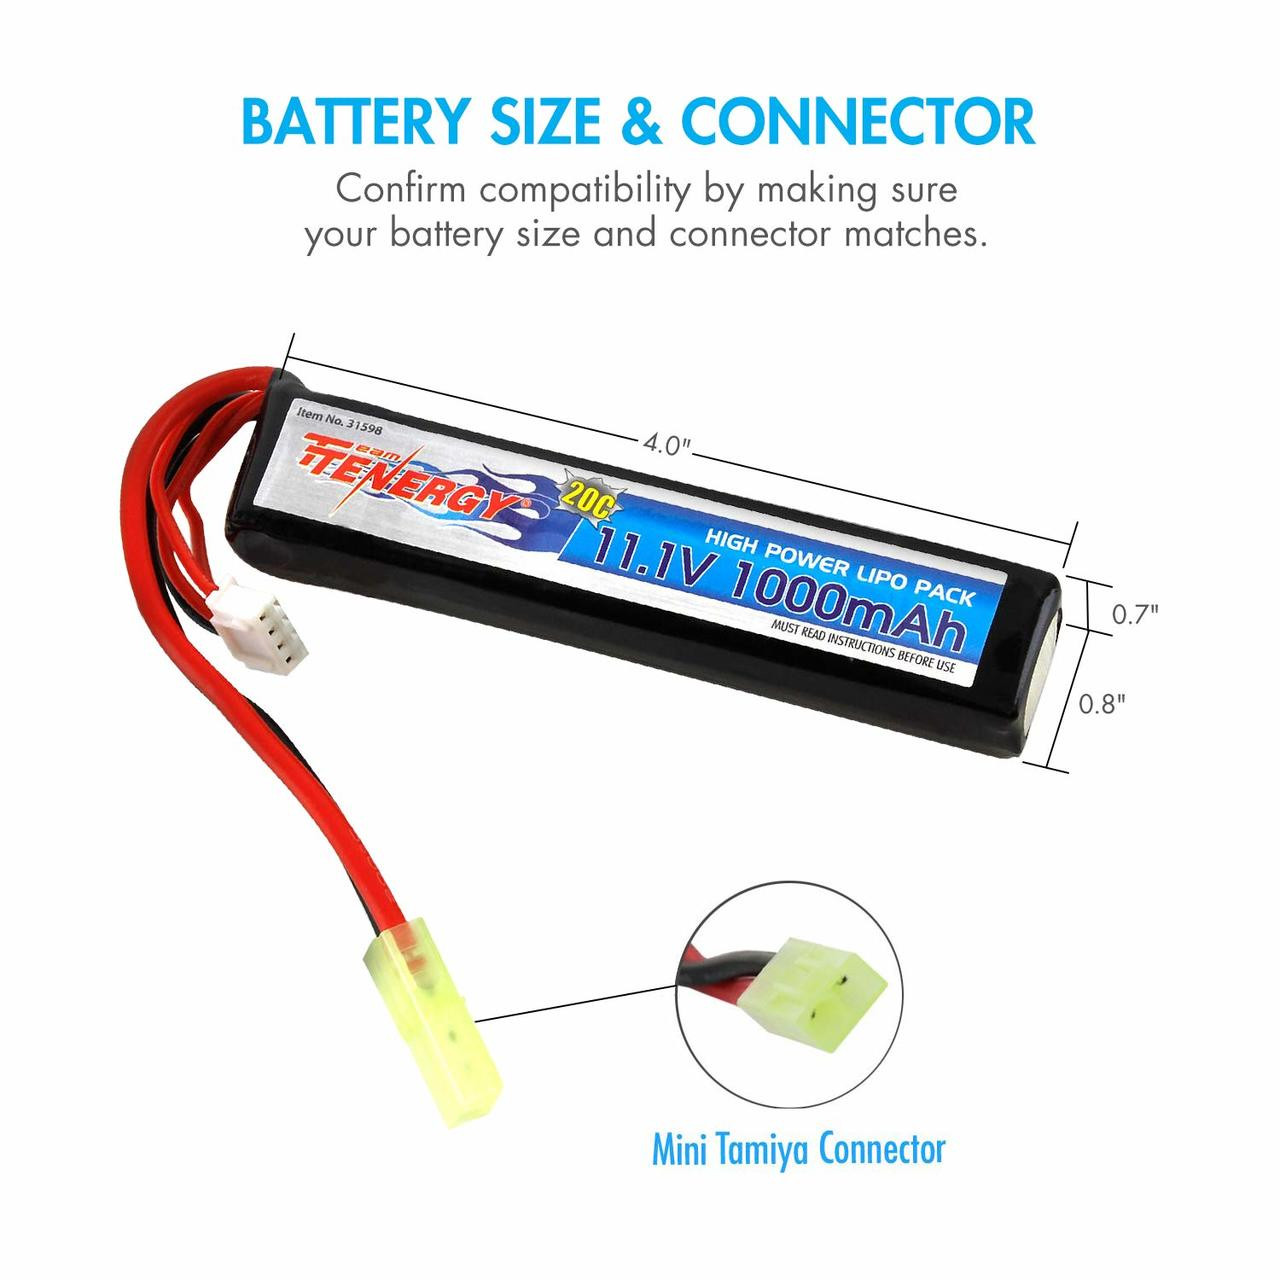 Tenergy Airsoft Li-Po 11.1V 1000mAh Stick Battery Pack w/ Mini Tamiya Connector